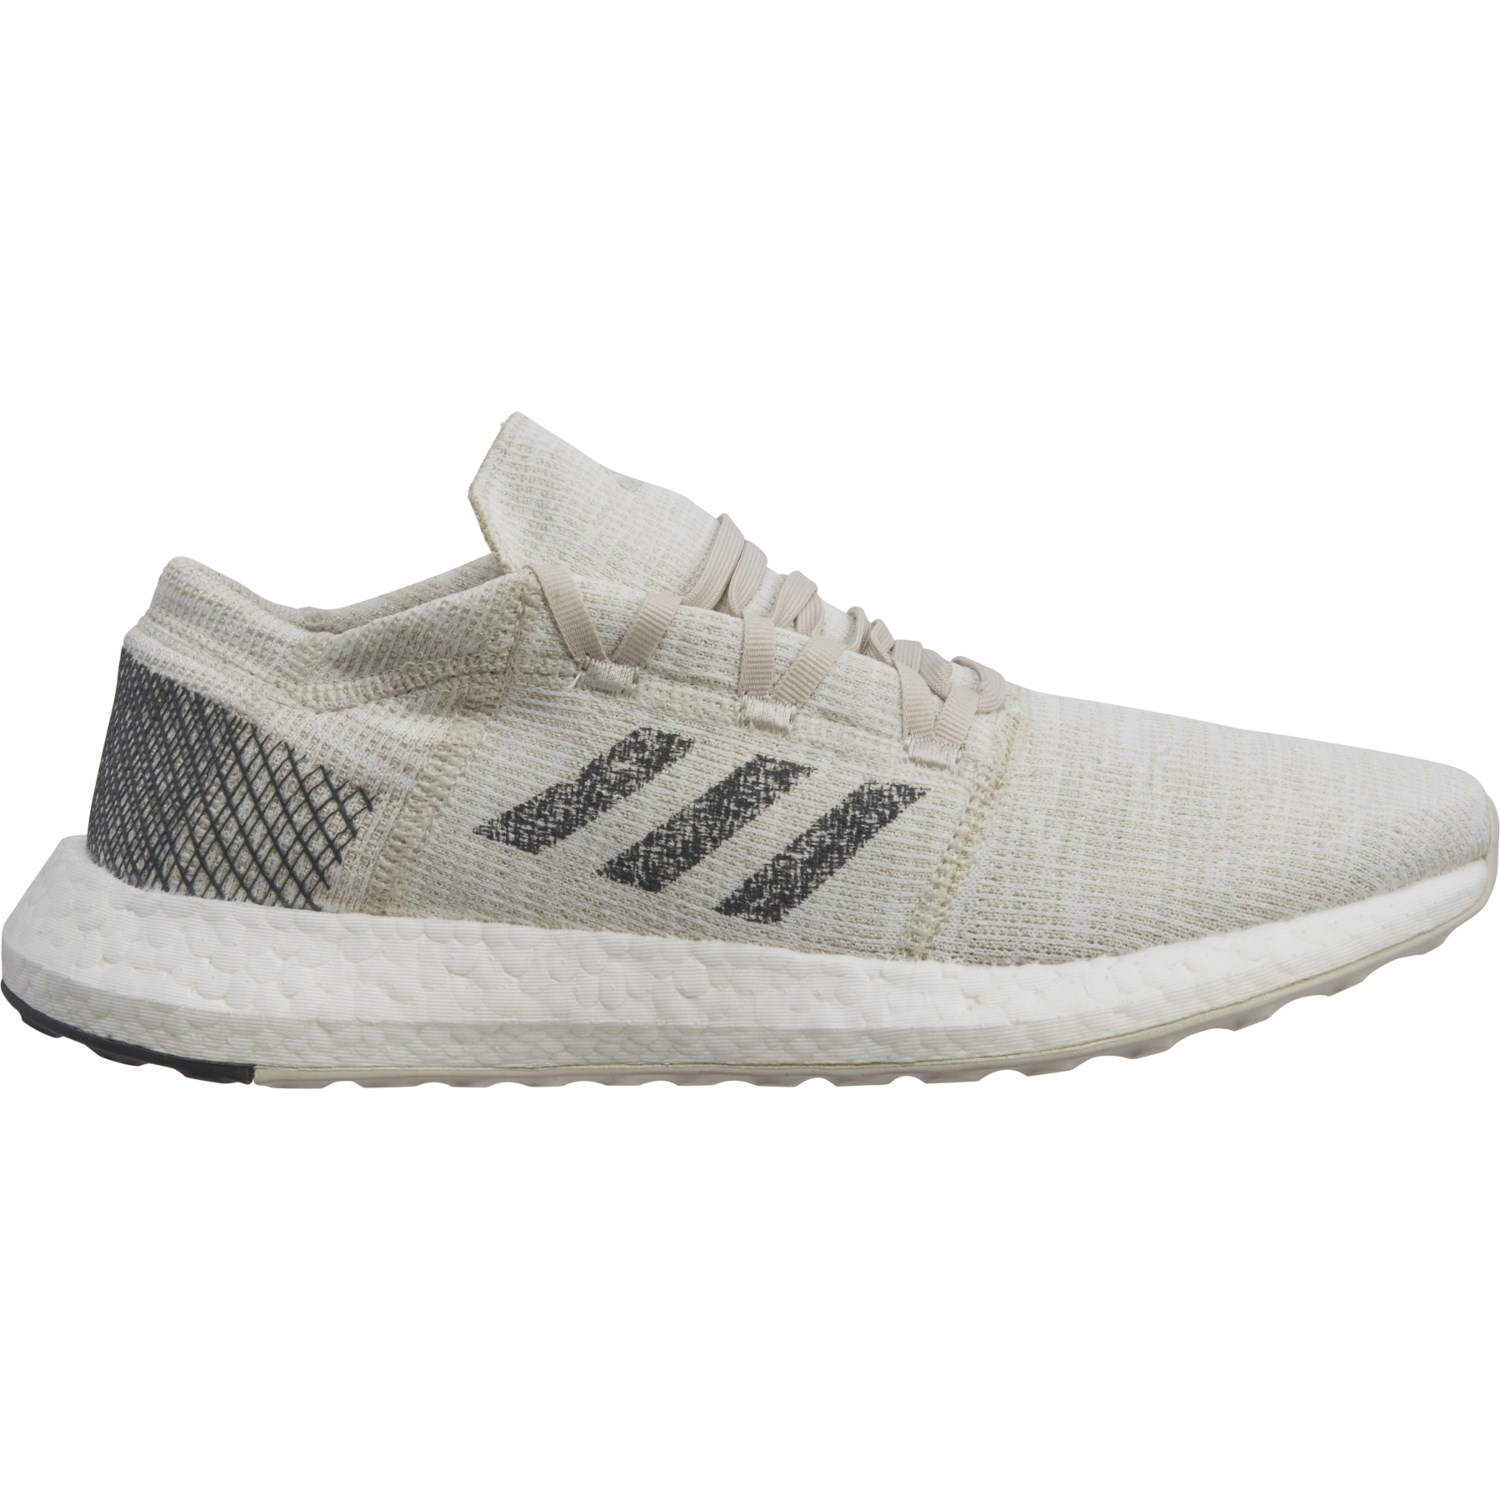 On Sale NOW! 44% Off Adidas Running PureBOOST DPR (Trace